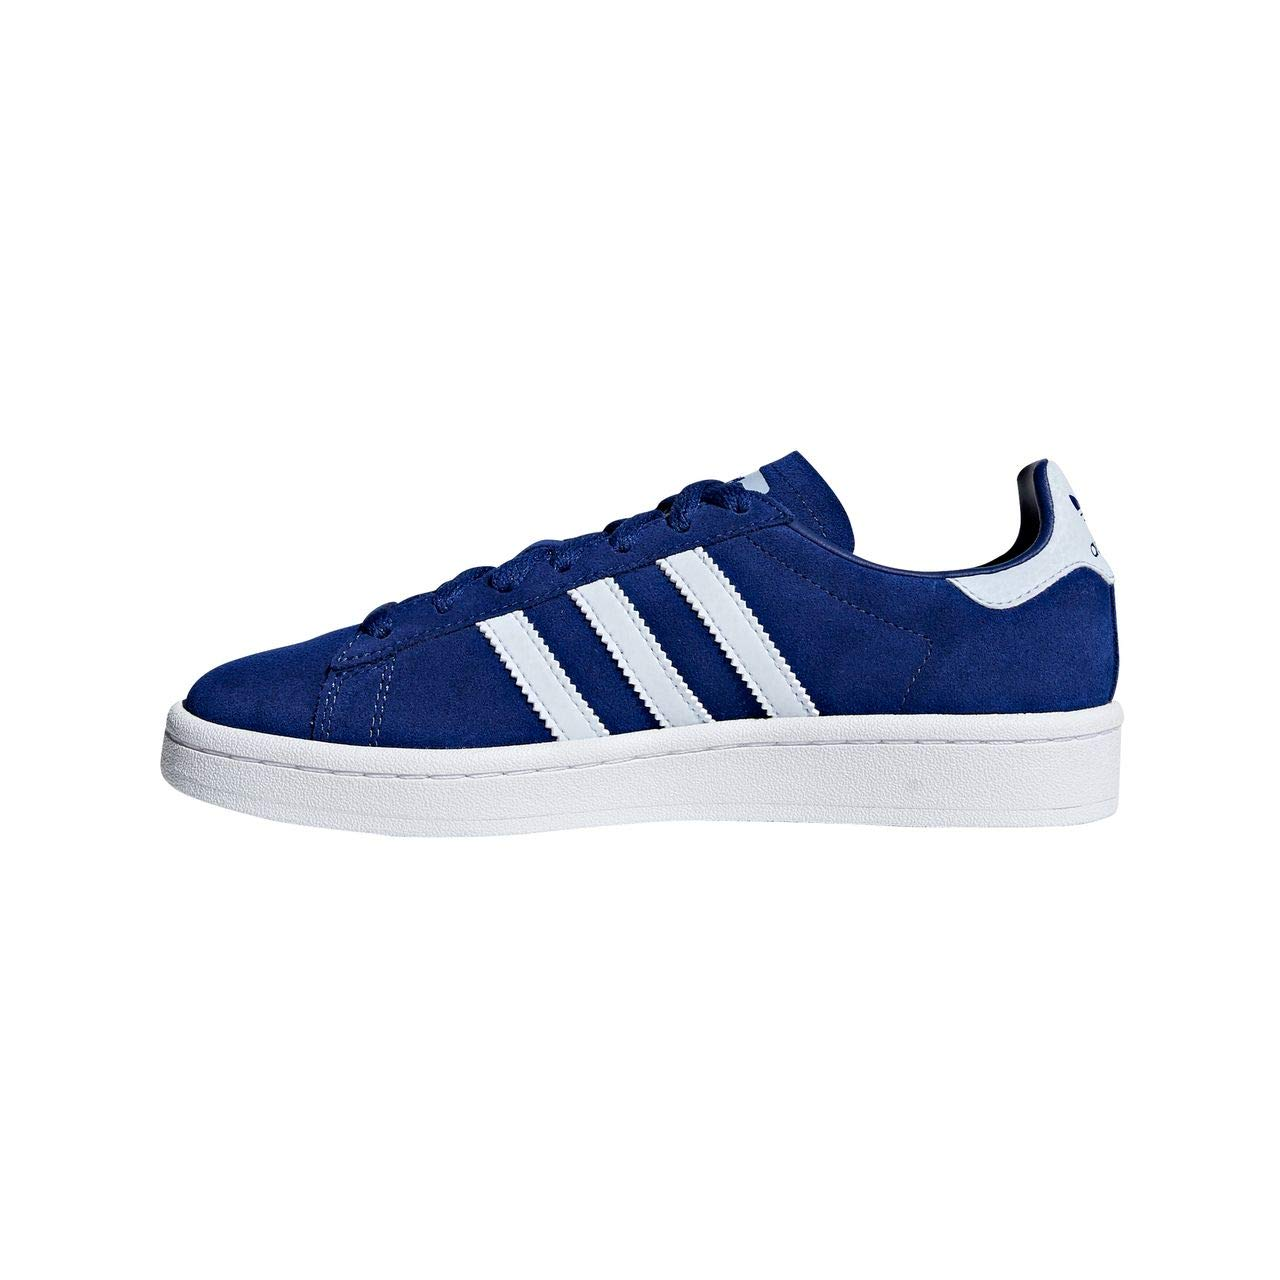 Adidas Campus J, Chaussures de Fitness Mixte Enfant BY9578